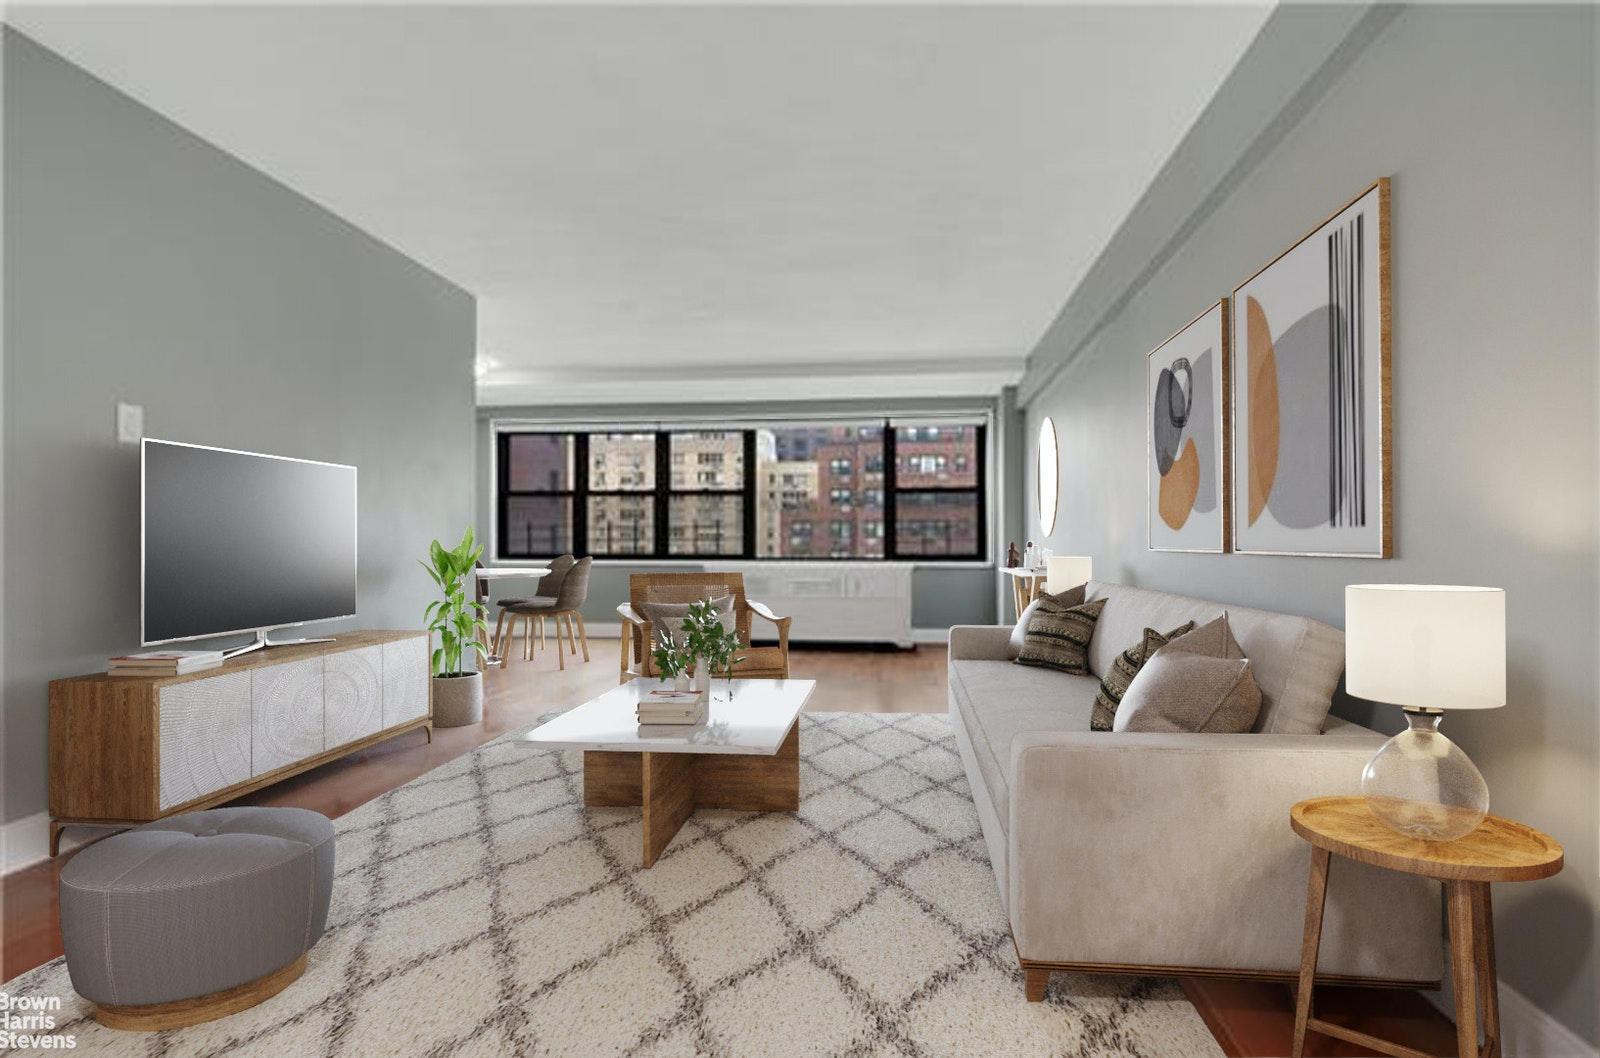 347 EAST 53RD STREET 8D, Midtown East, $750,000, Web #: 20534998